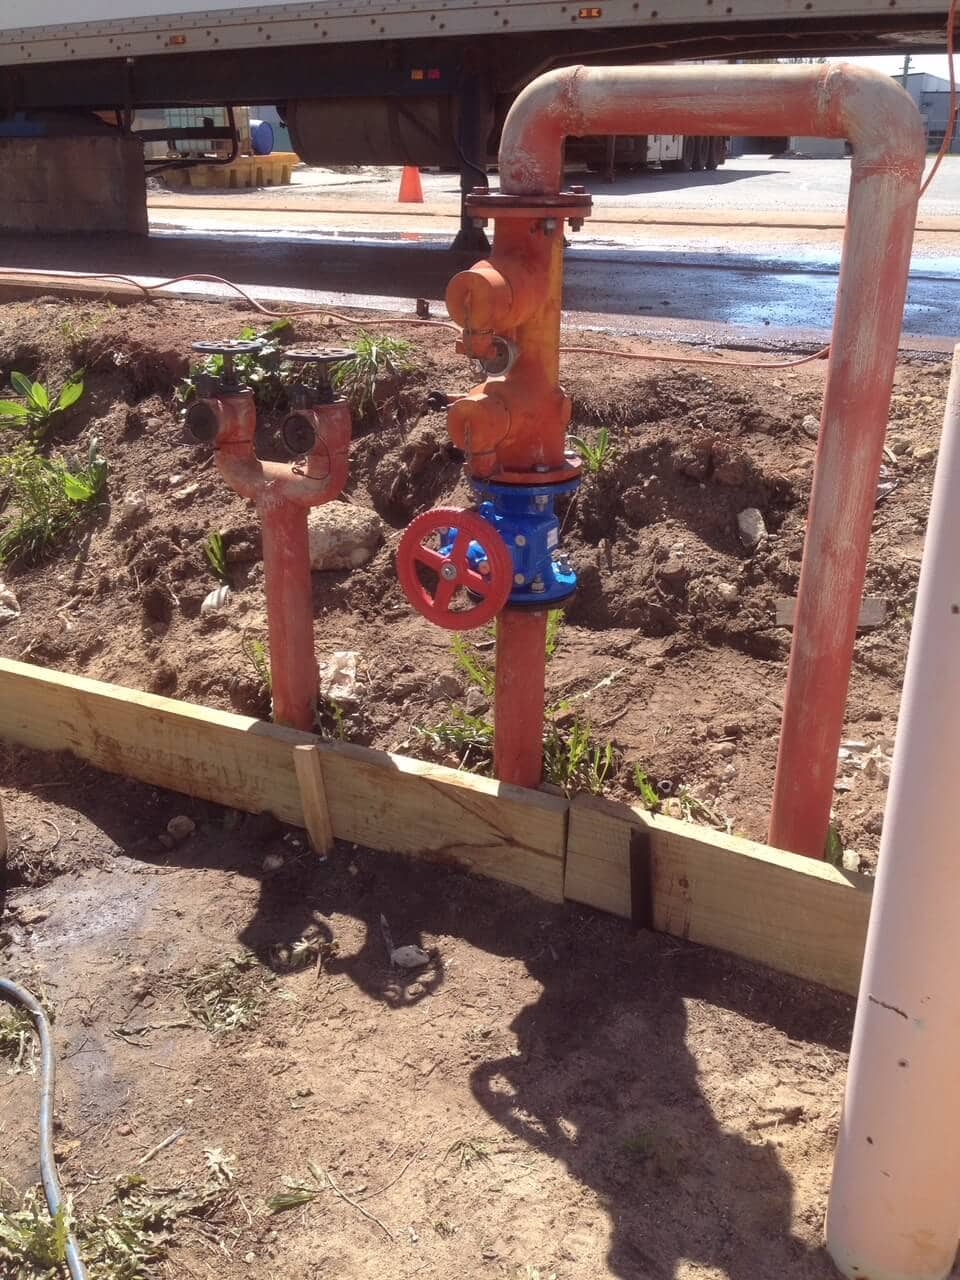 Everyday Plumbers Fire Hydrants Repair and Monitoring - Full View of the Setup 2225